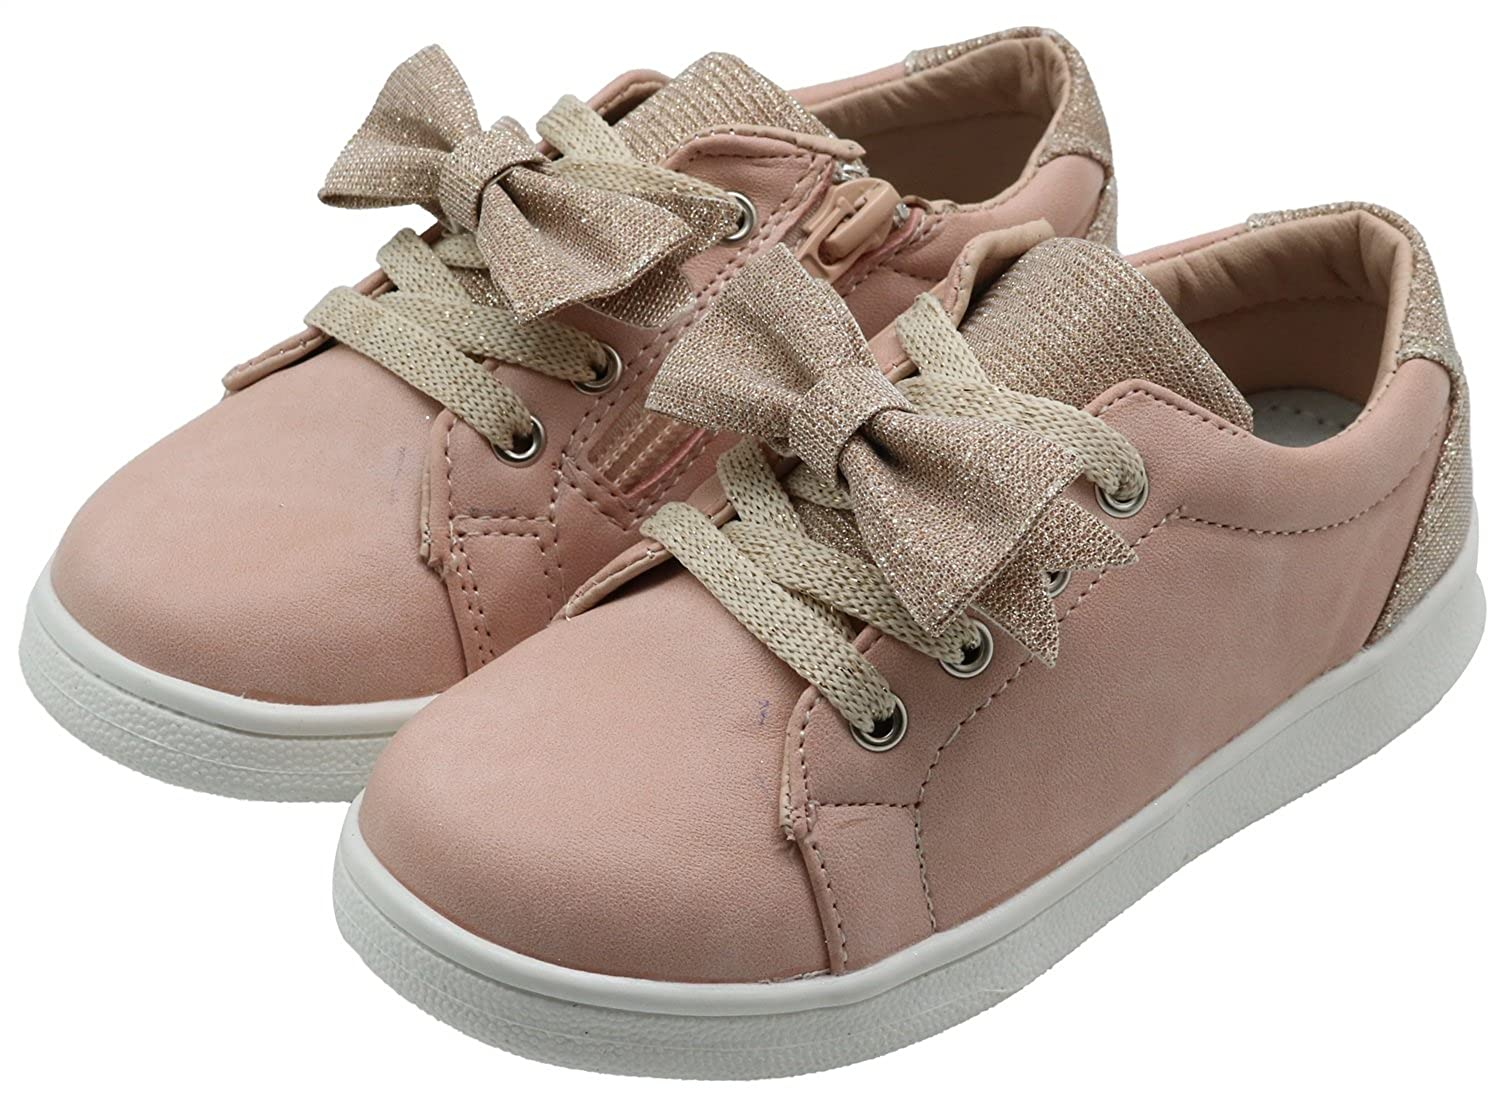 Toddler//Little Kid XB17002 Apakowa Kids Girls Sneakers Casual Shoes with Cute Bowknot